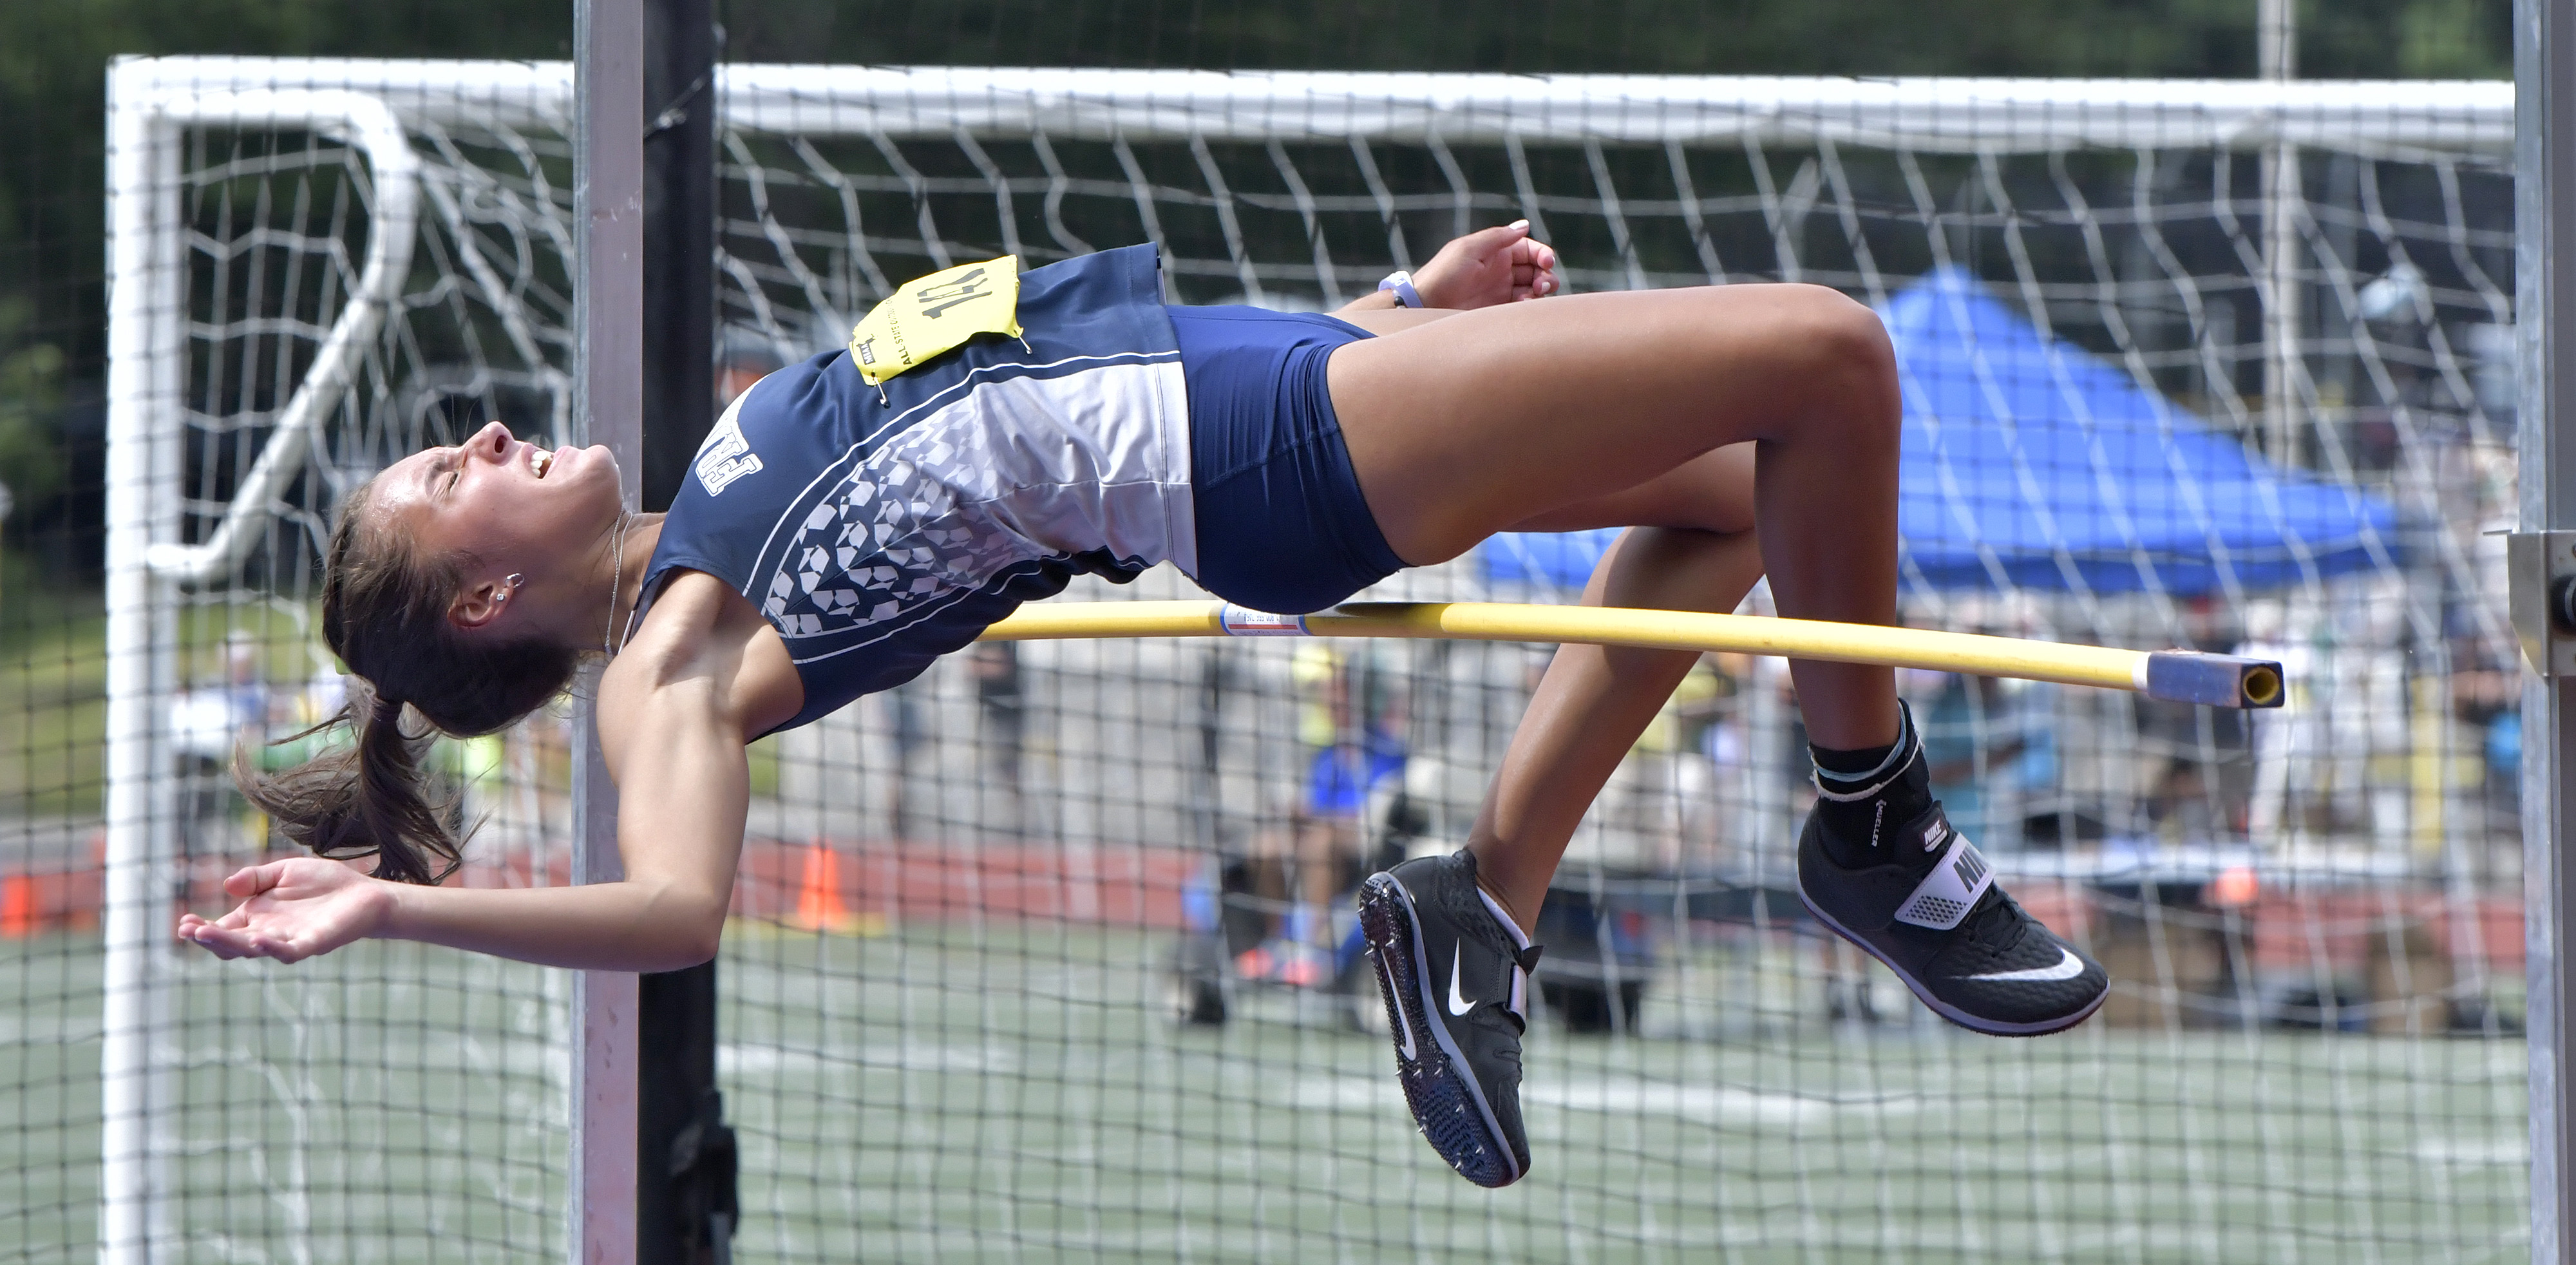 After winning the high jump at 5ft 6in, Sophie Albright of Framingham attempted to break the state competition record of 5-8.